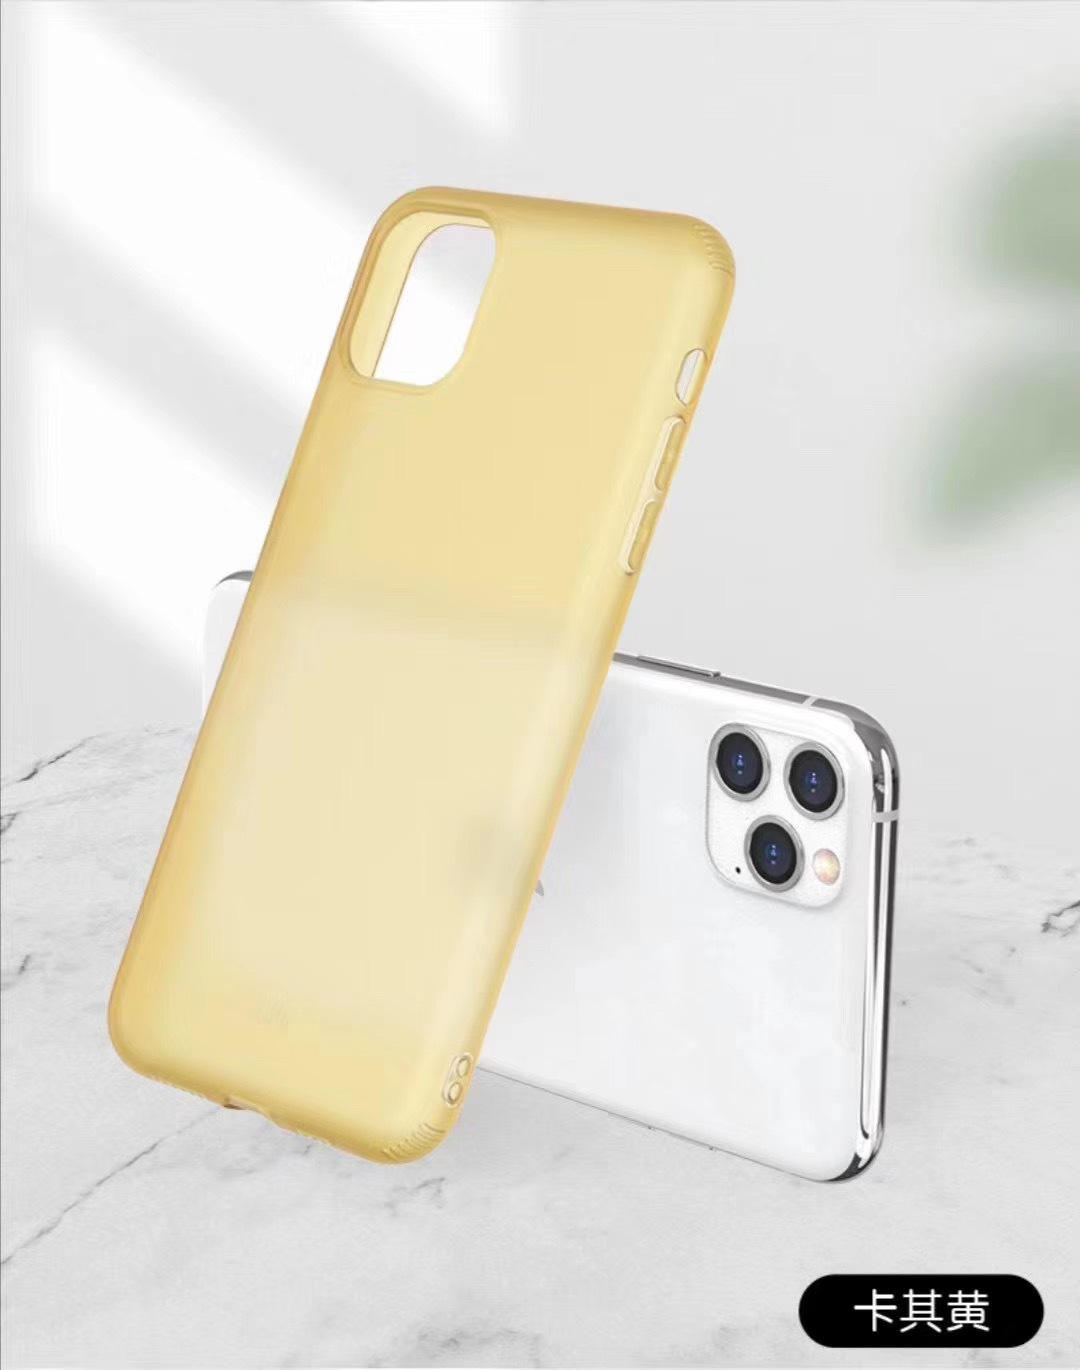 Latex Apple 11 mobile phone case for iphoneX / 7 plusTPU skin feel frosted mobile phone protective cover NHKI205481